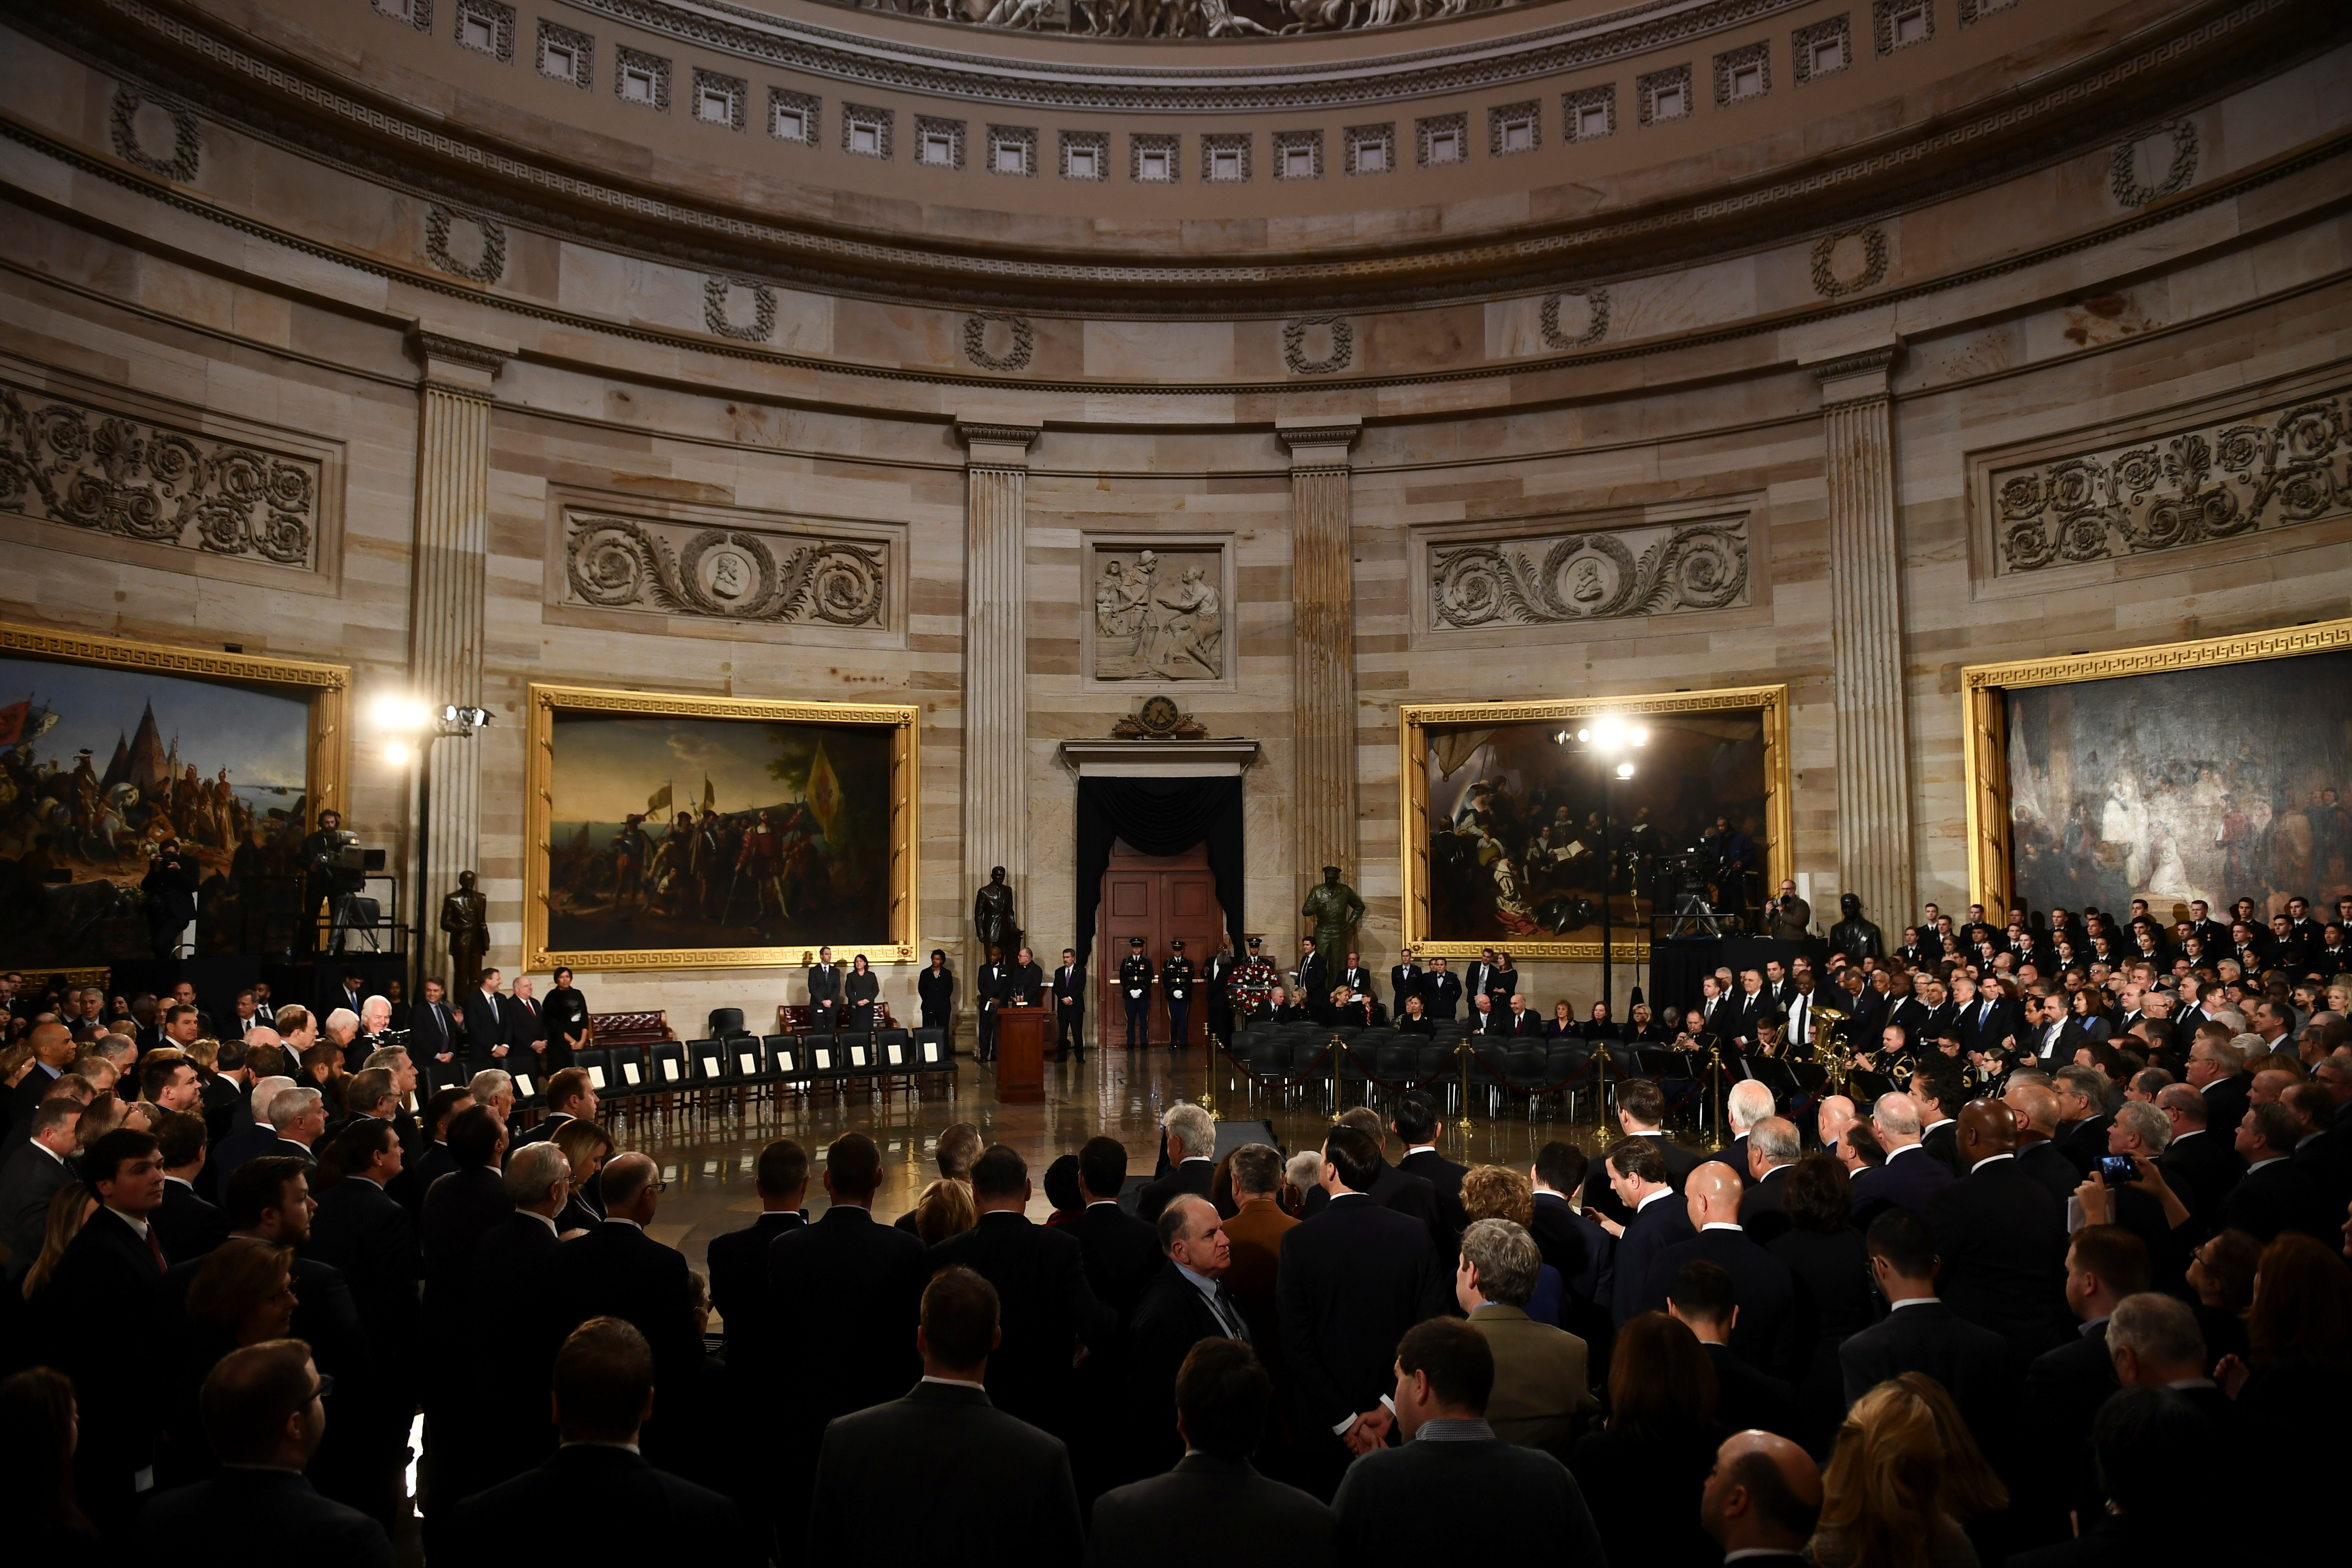 Attendees wait for the casket of former U.S. President George H.W. Bush to arrive at the U.S. Capitol in Washington, D.C., U.S., December 3, 2018. (Brendan Smialowski/Pool via REUTERS)